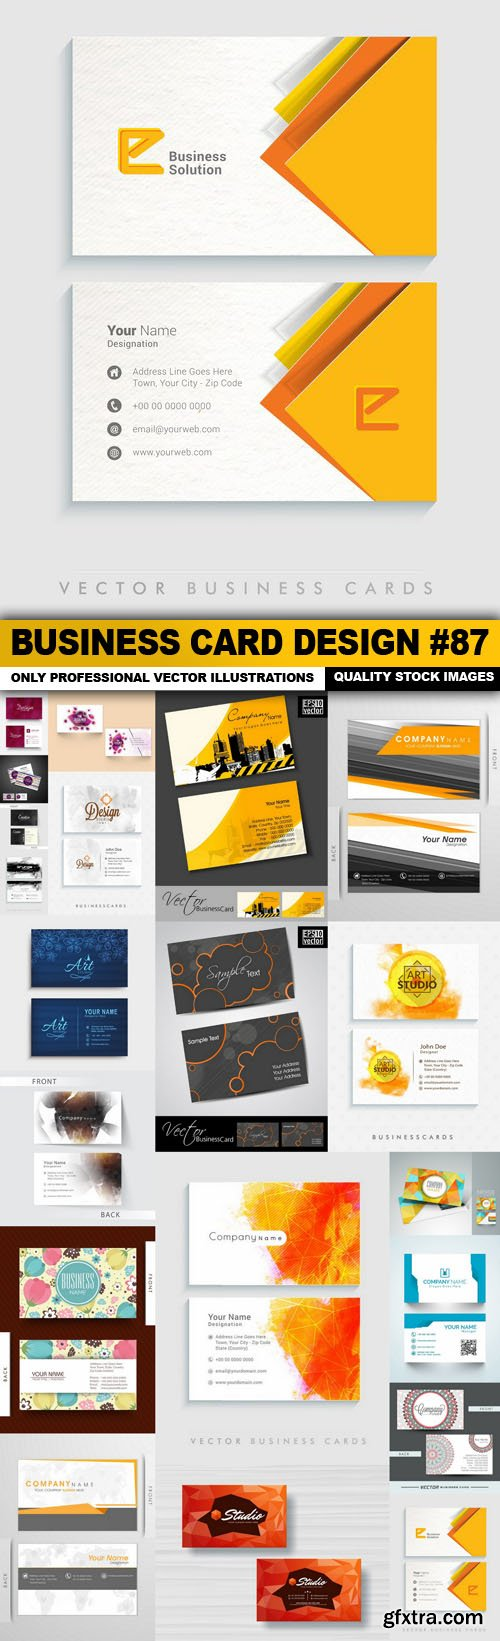 Business Card Design #87 - 20 Vector